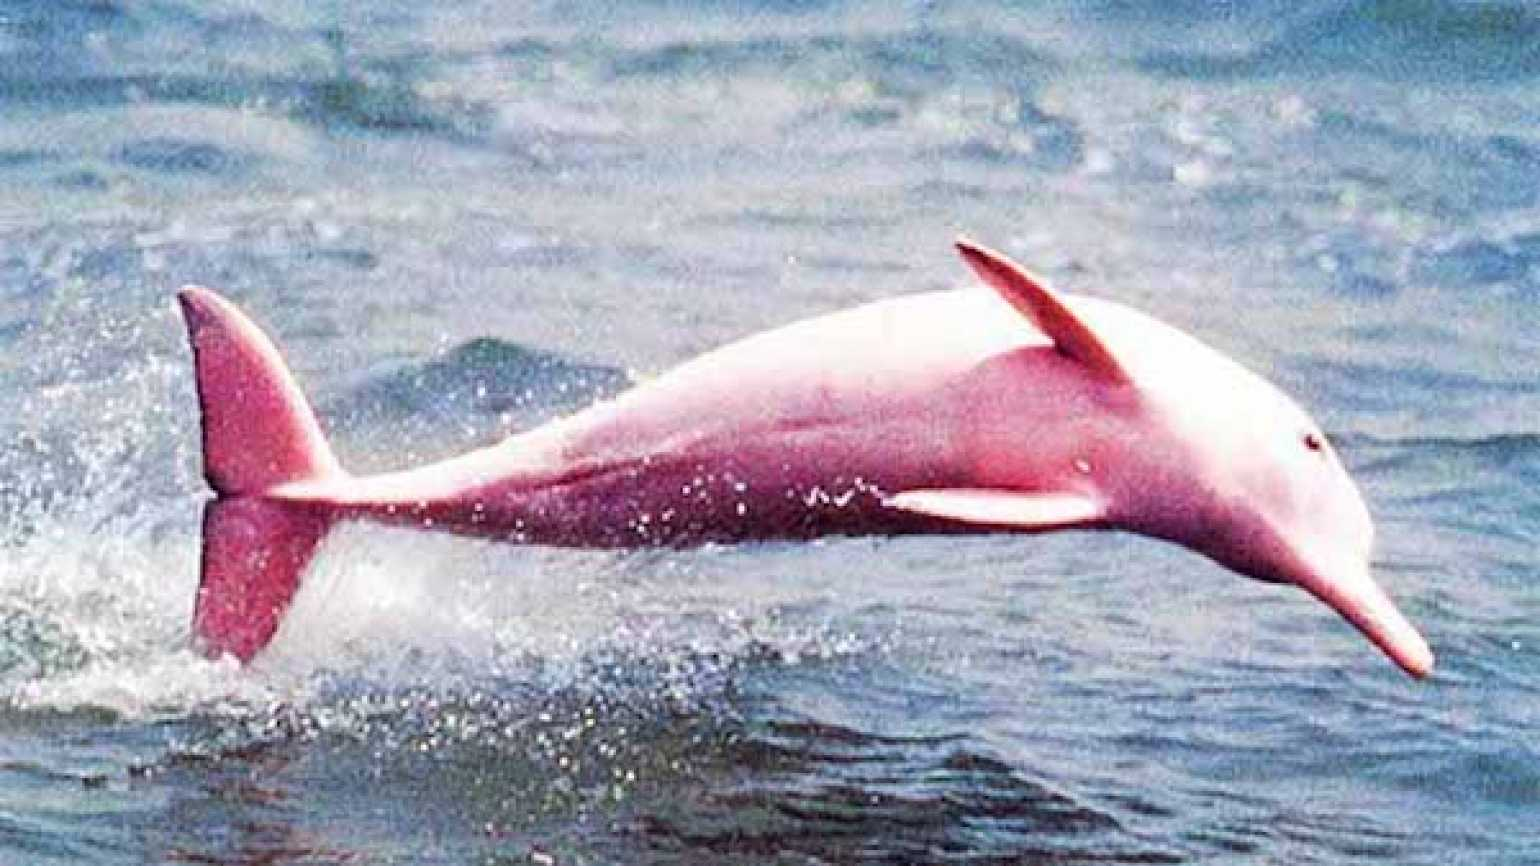 The pink dolphin spotted in Louisiana.